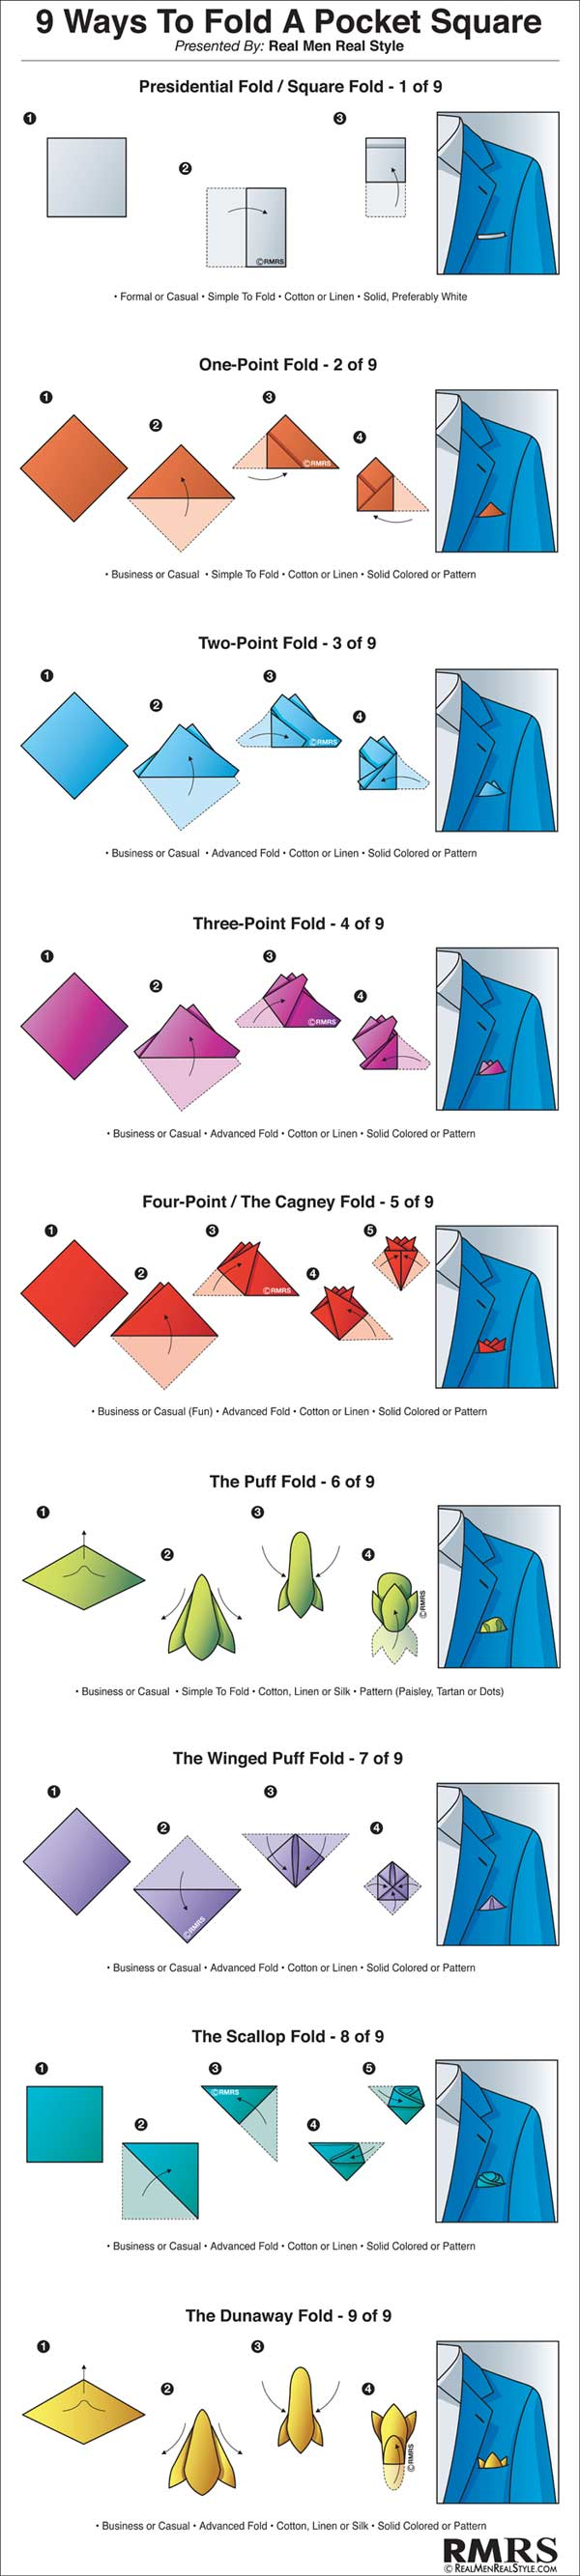 9 Ways To Fold A Pocket Square Infographic,9 Ways To Fold A Pocket Square ,Infographic,9 Ways To Fold ,A Pocket Square Infographic,Pocket Square Infographic,A GENTLEMEN'S GUIDE TO Fold A Pocket Square, , TIE A SCARF, WAYS TO TIE A SCARF,WAYS TO Pocket Square,Fold A Pocket Square,Ways Fold A Pocket Square